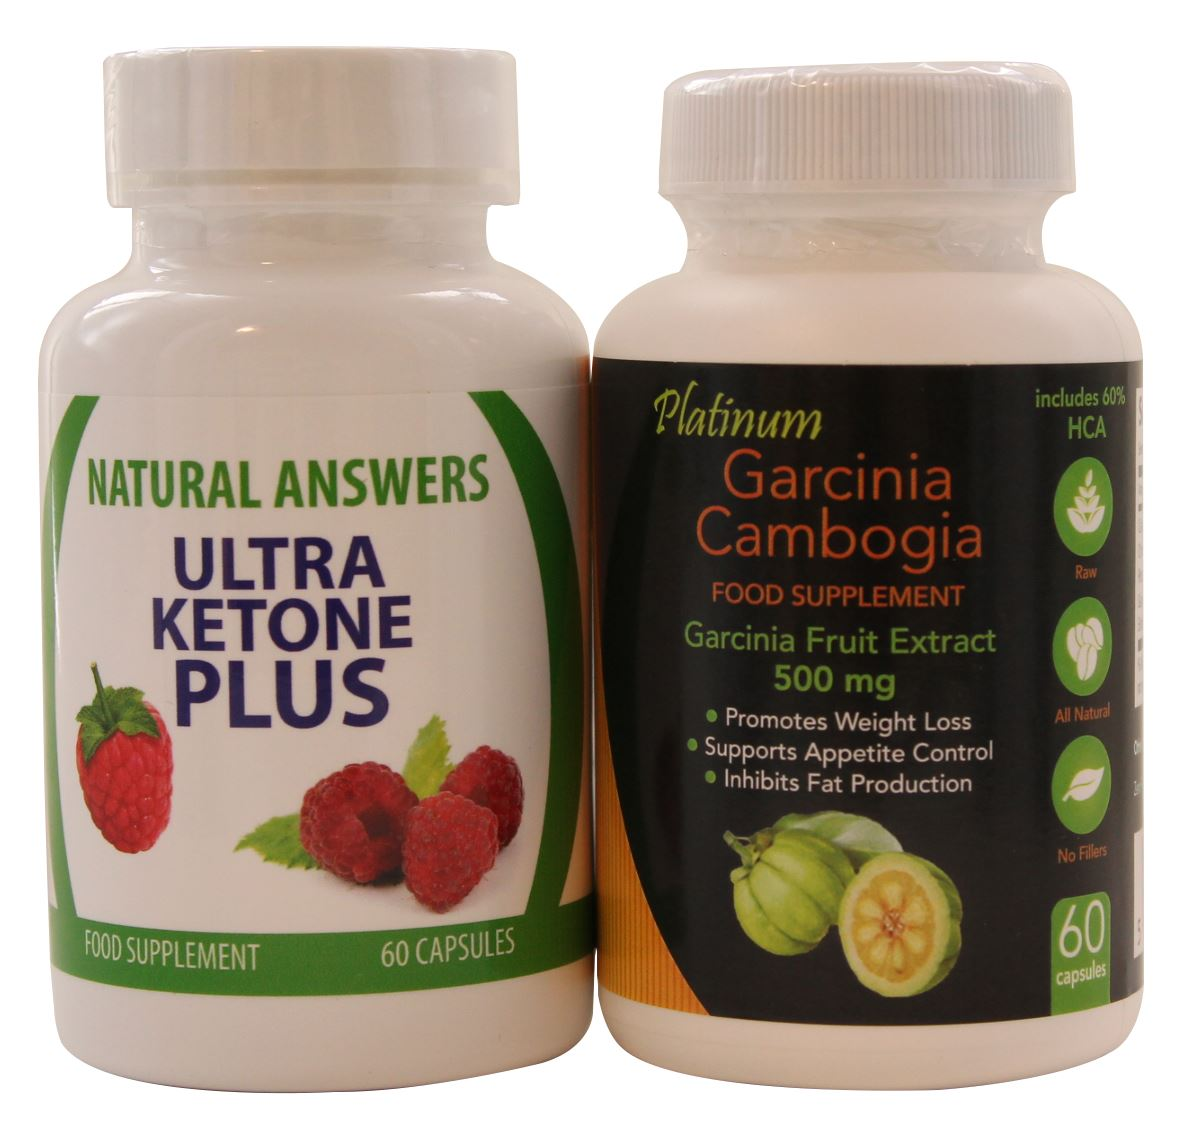 60 ultra ketone plus natural answers 60 garcinia cambogia detox diet pills ebay. Black Bedroom Furniture Sets. Home Design Ideas